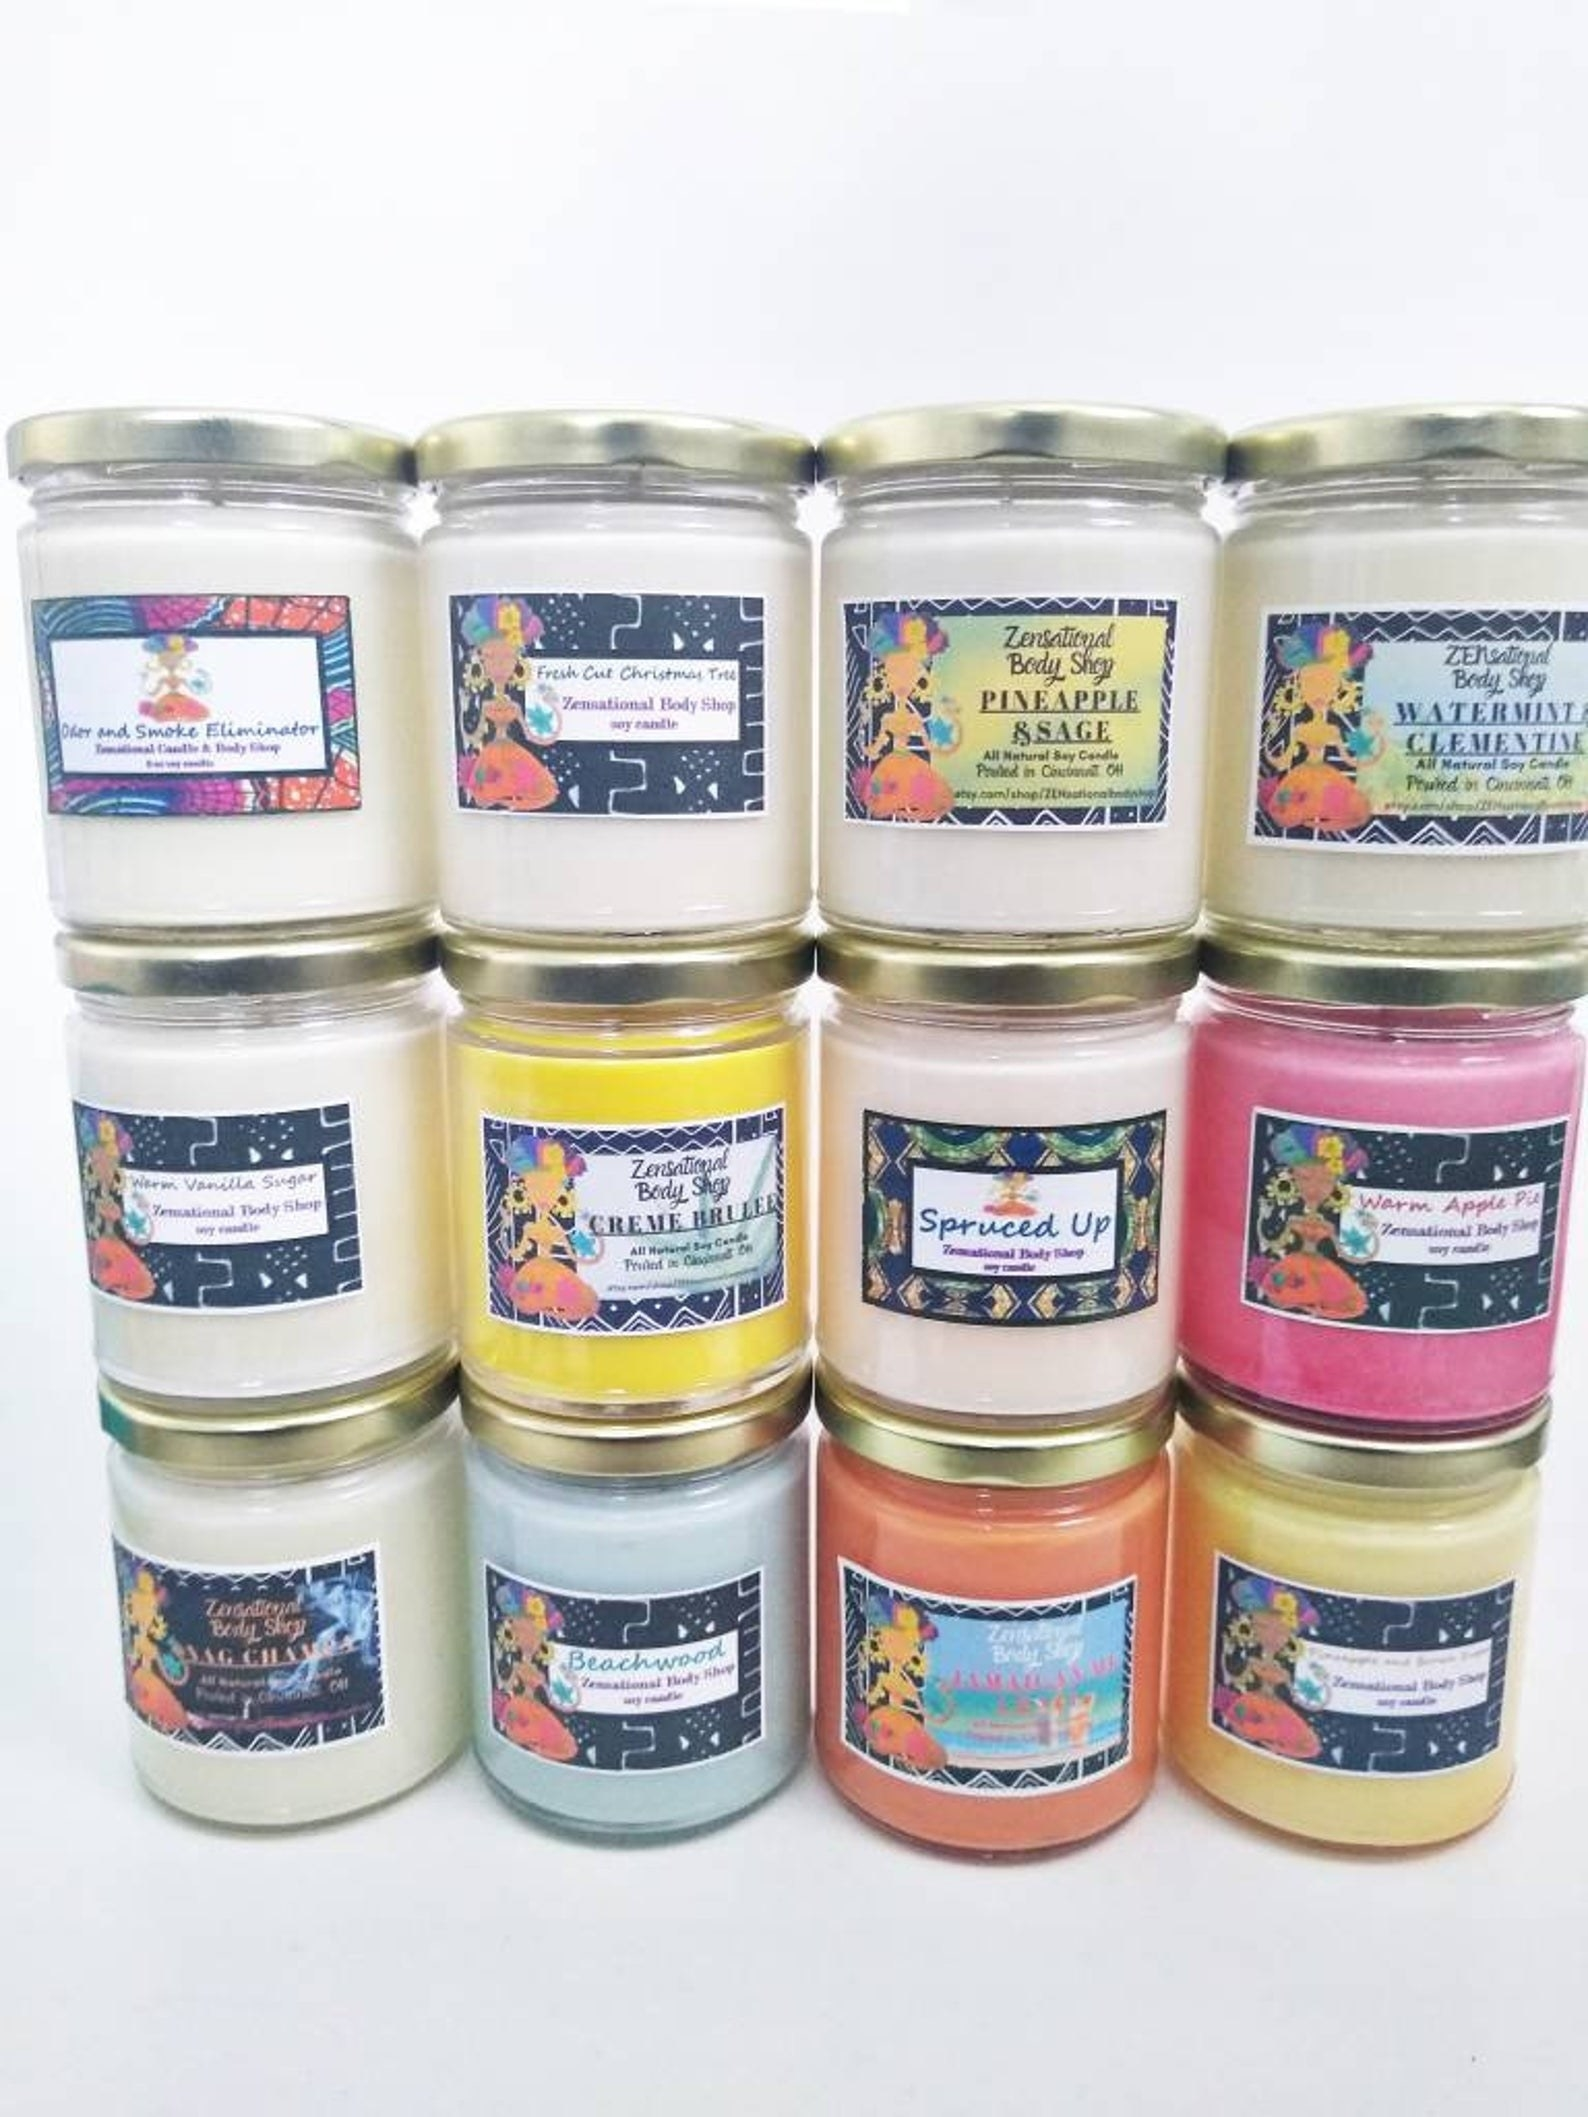 """12 different candles in various colors with illustrated labels on them and flavors like """"pineapple and sage"""" or """"spruced up"""""""